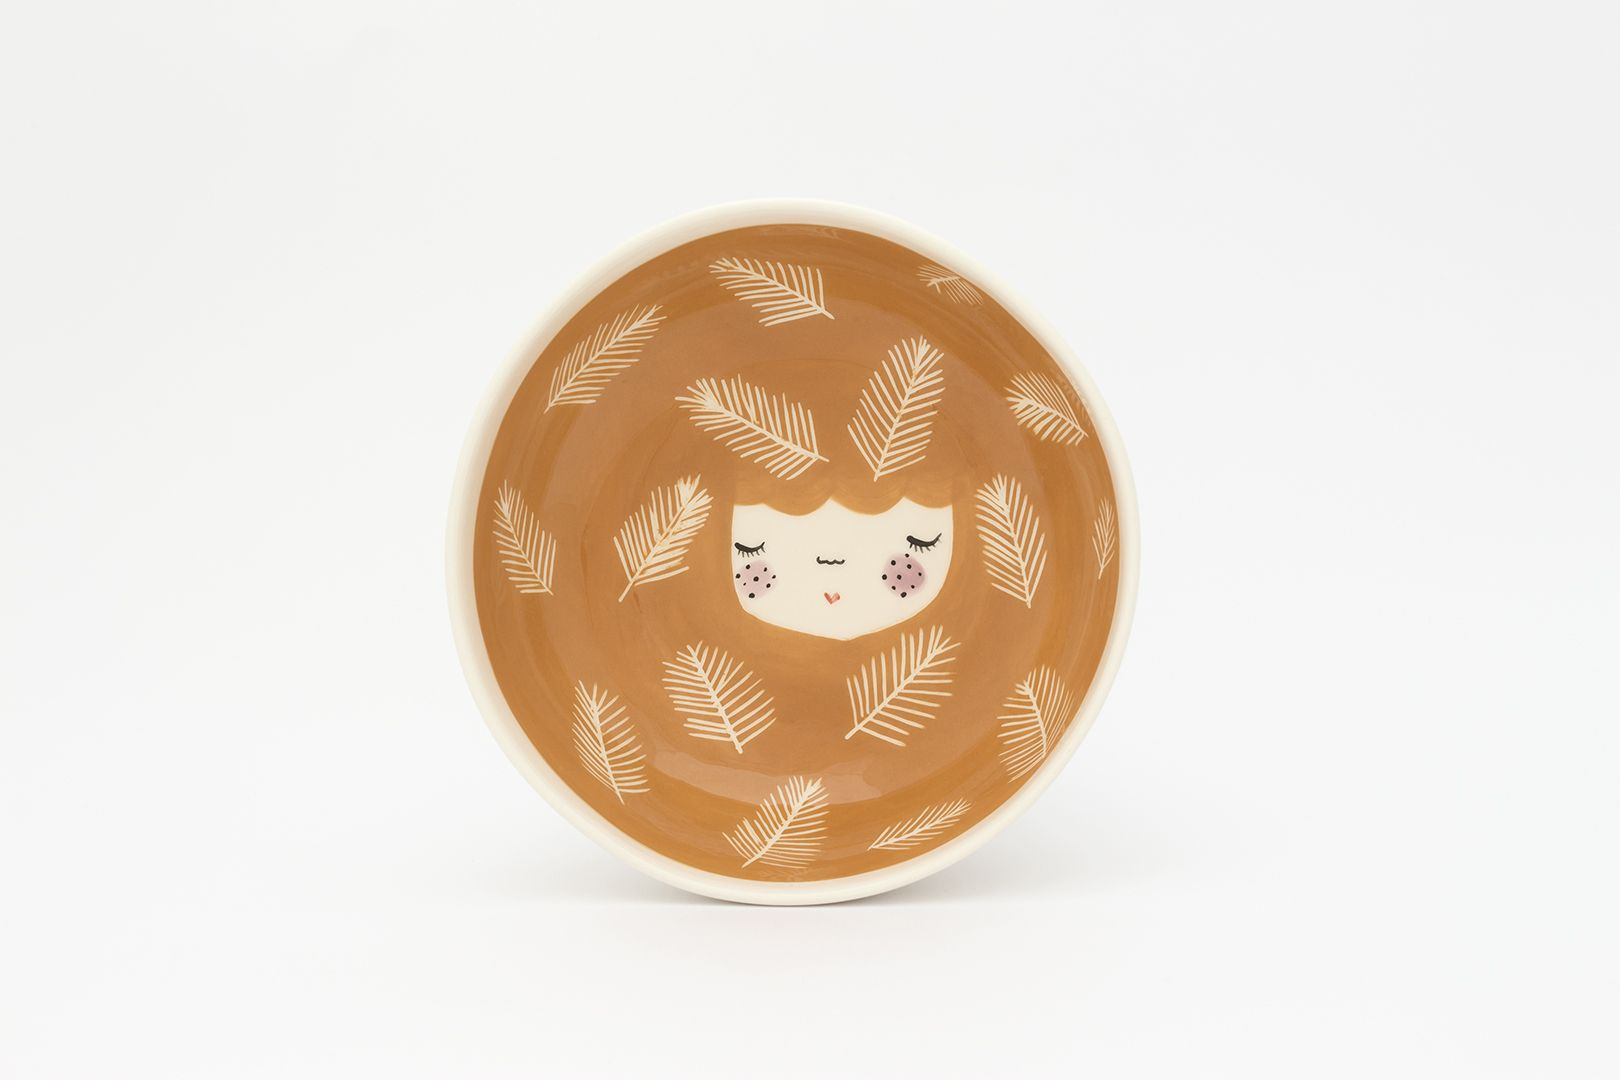 HoneyBun Bowl with Pine Leaves